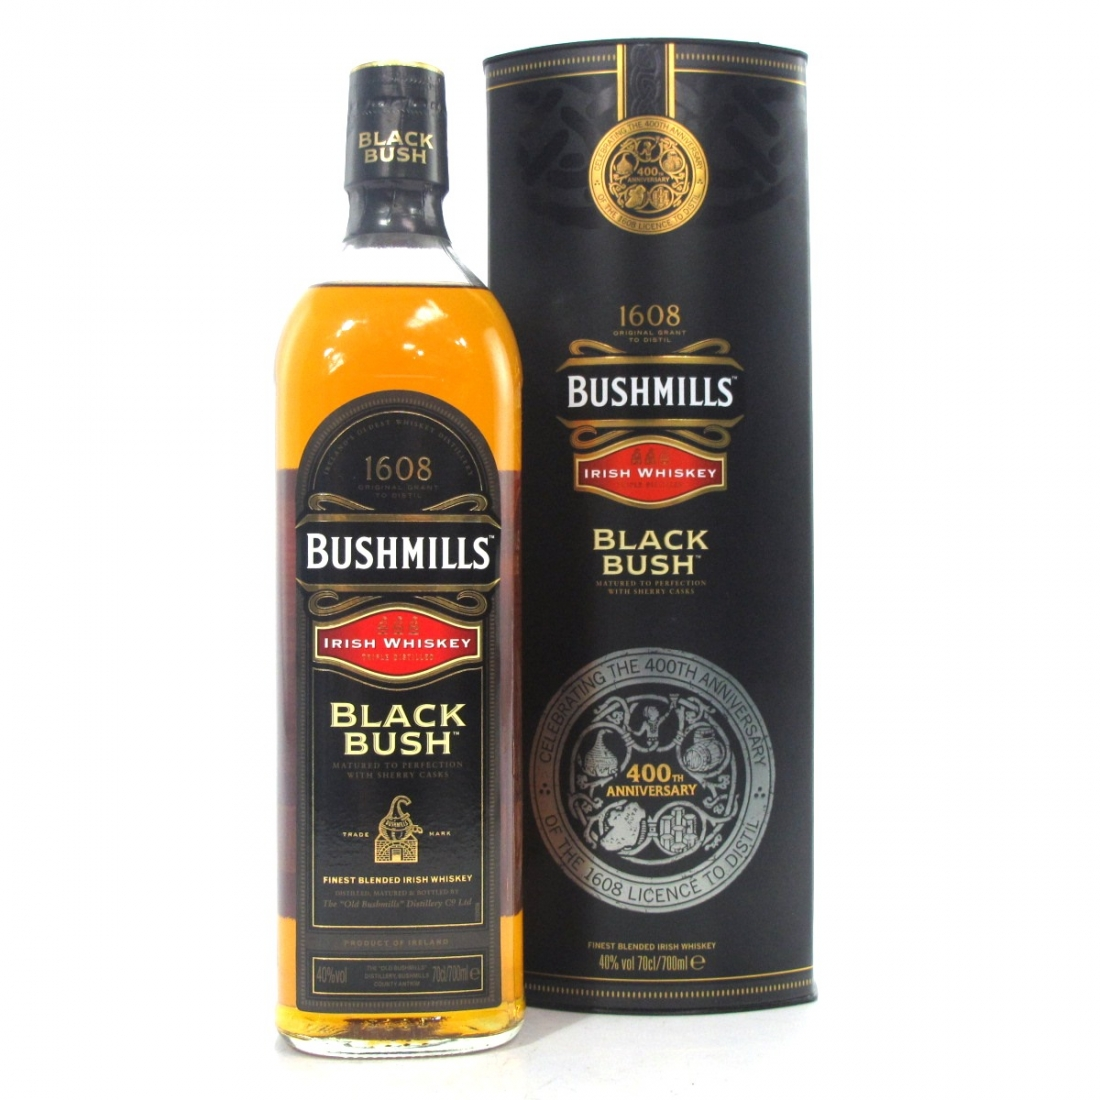 Bushmills Black Bush / 400th Anniversary